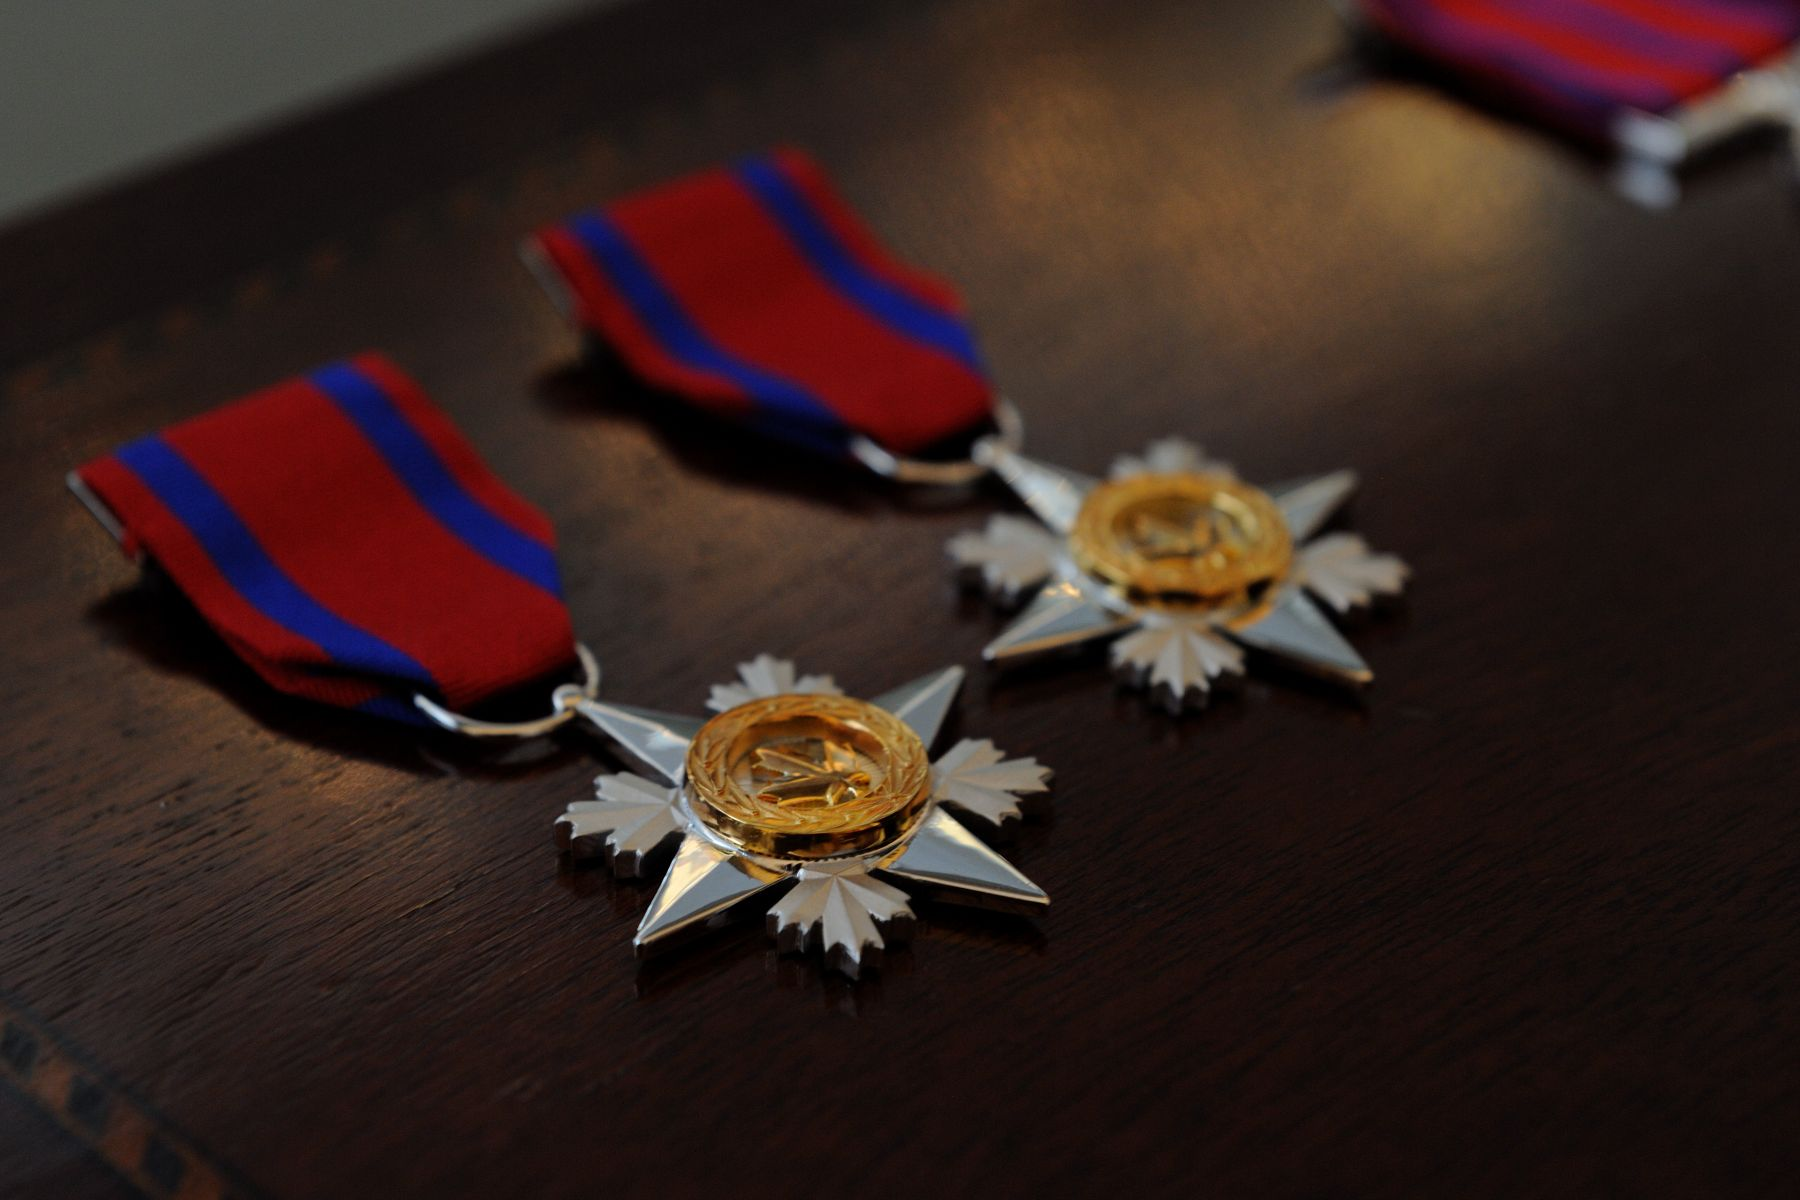 The Decorations for Bravery were created in 1972, to recognize people who risked their lives to try to save or protect the lives of others. The Cross of Valour (C.V.) recognizes acts of the most conspicuous courage in circumstances of extreme peril; the Star of Courage (S.C.) recognizes acts of conspicuous courage in circumstances of great peril; and the Medal of Bravery (M.B.) recognizes acts of bravery in hazardous circumstances.